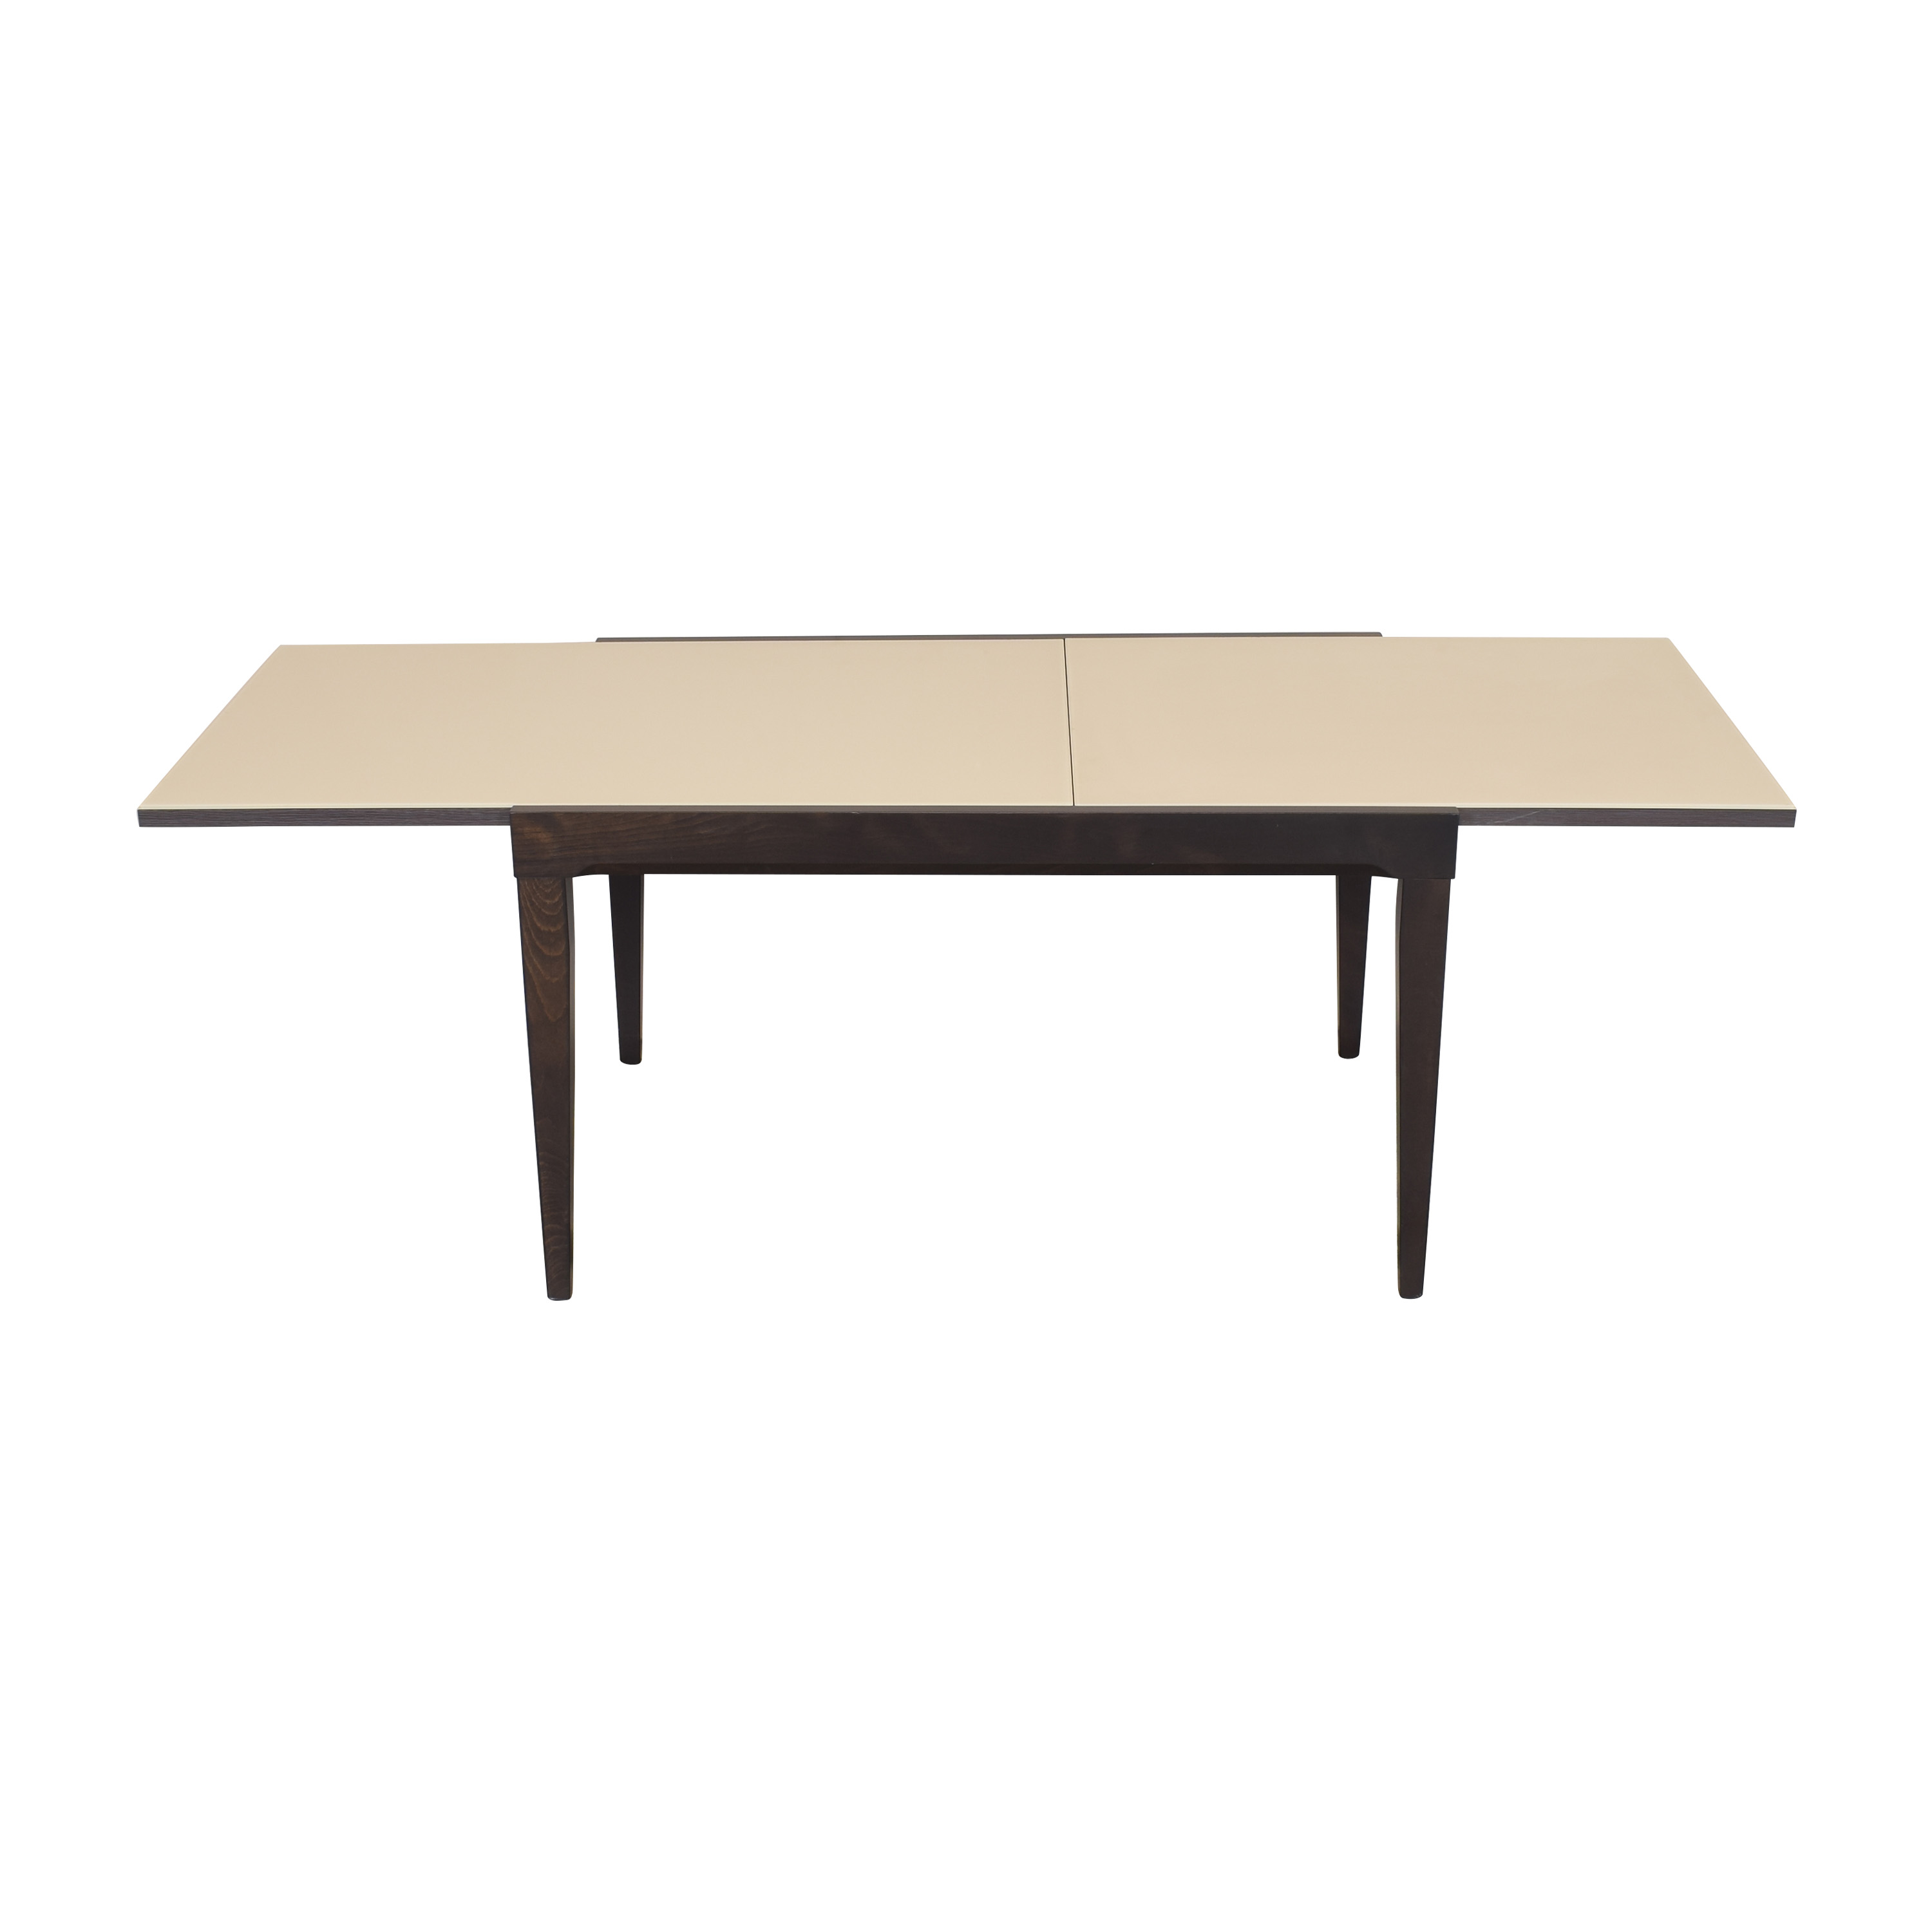 Calligaris Calligaris Extendable Dining Table discount